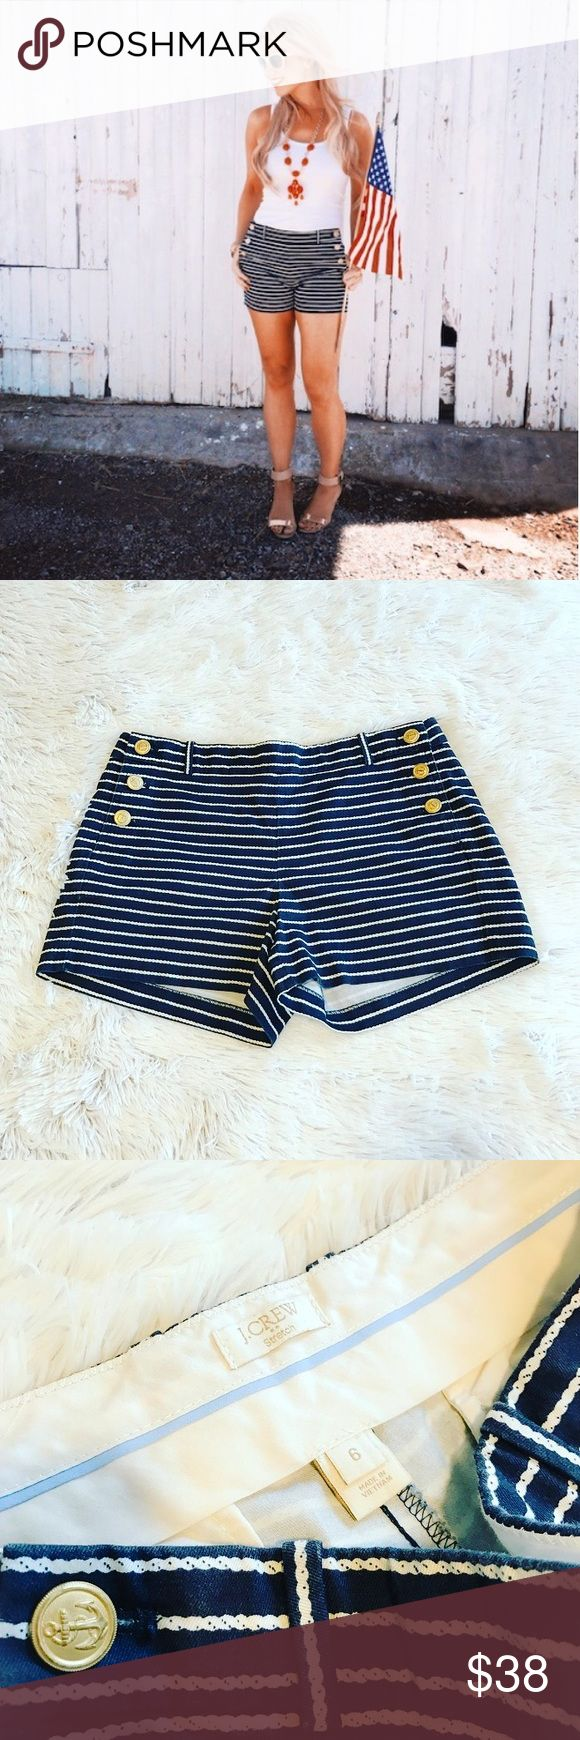 Wknd Sale⭐ J Crew Striped Anchor Shorts J Crew Navy Blue & White Striped Shorts. Anchor design on buttons. Size 6. 97% cotton. 3% spandex gives it some stretch:) Excellent Condition, look brand new! J Crew Shorts